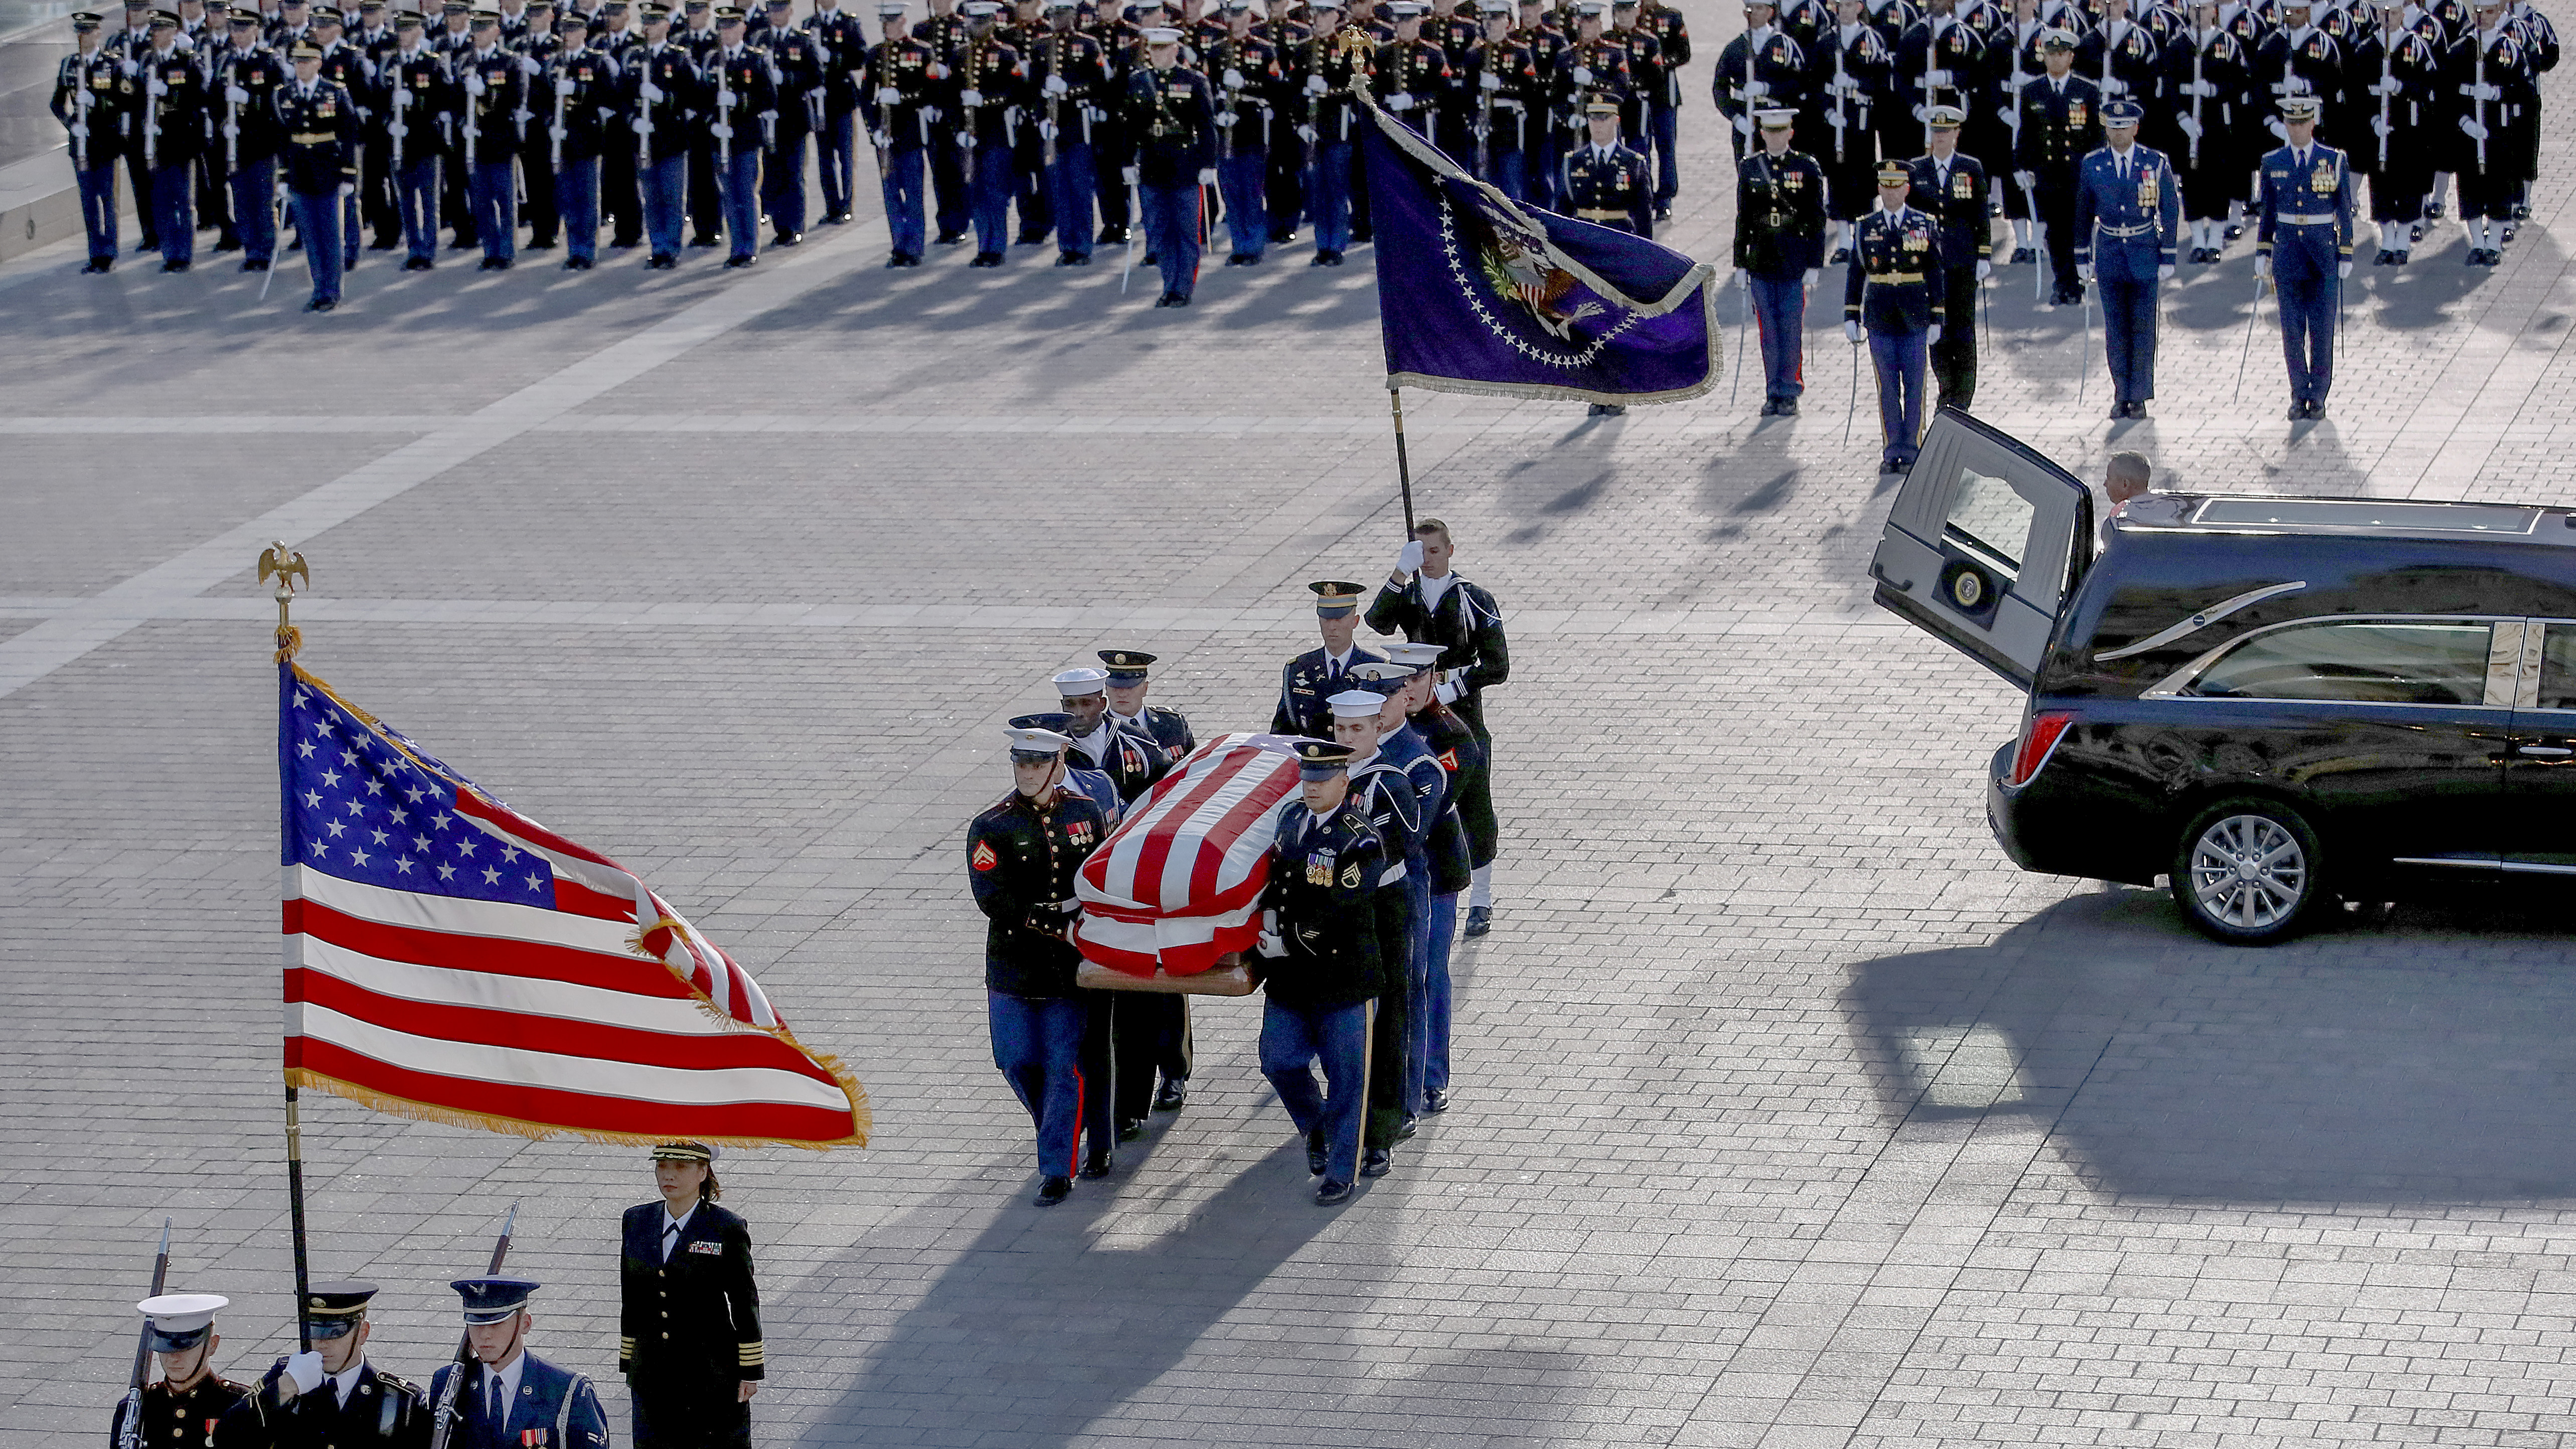 A military honor guard team carries the casket of former U.S. President George H. W. Bush into the U.S. Capitol December 3, 2018 in Washington, DC. A state funeral for former U.S. President Bush will be held in Washington over the next three days, beginning with him lying in state in the Rotunda of the Capitol until Wednesday morning. (Photo by Win McNamee/Getty Images)